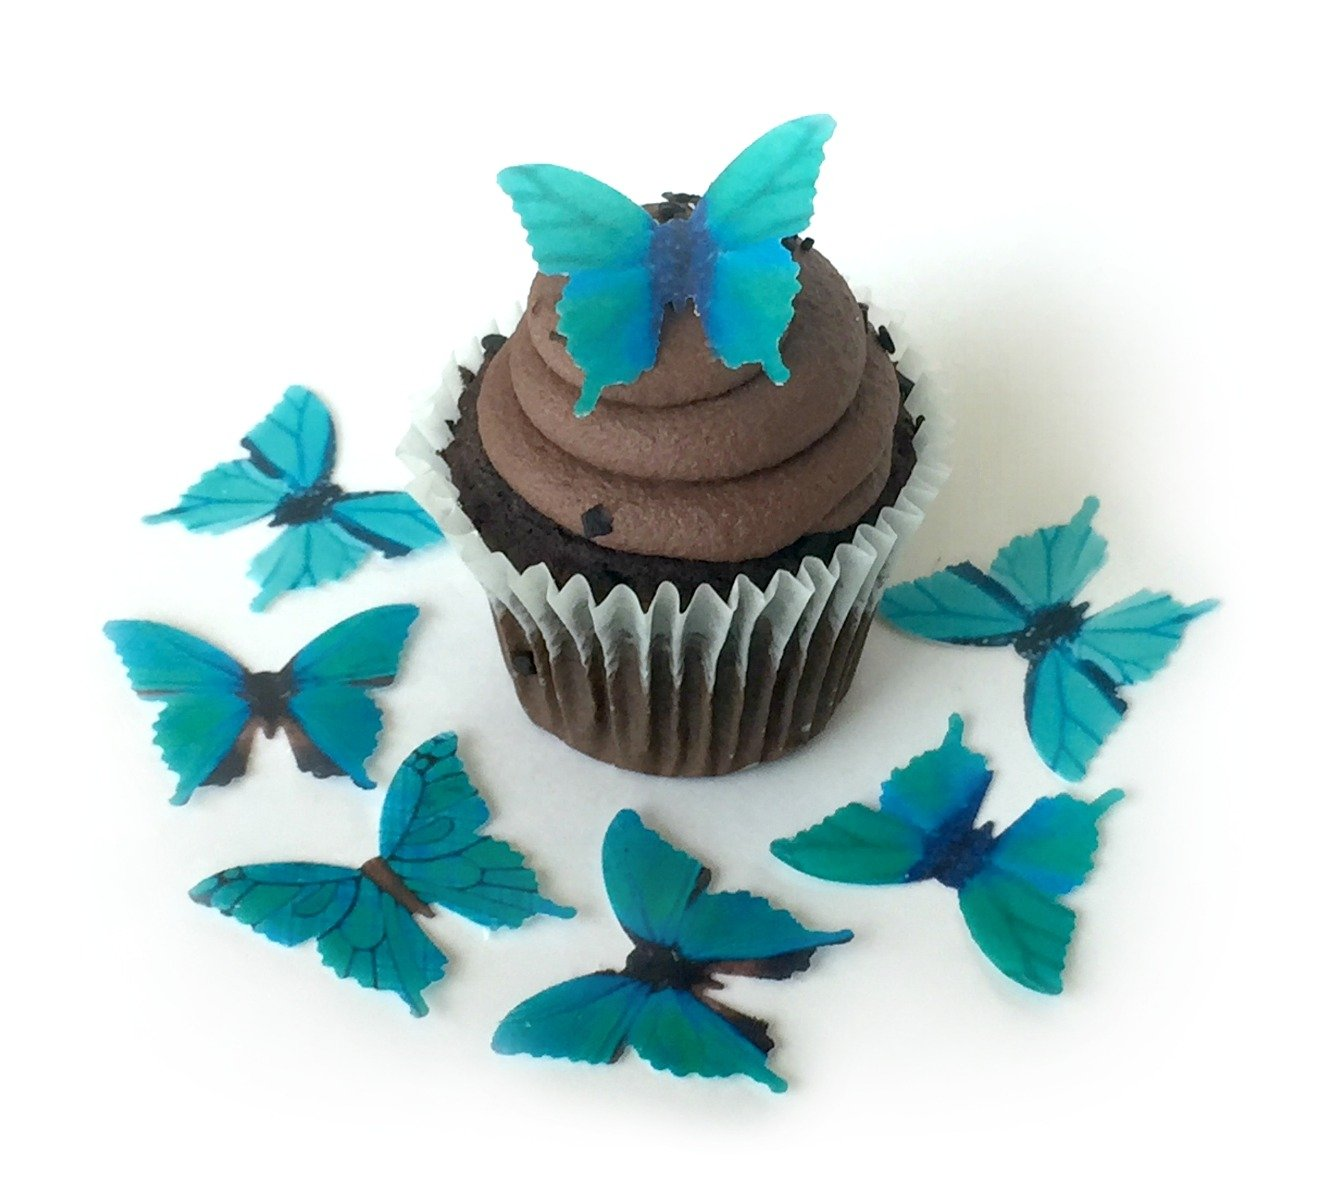 Assorted Teal Green Aquamarine Wafer Paper Butterflies 1.75 Inch for Decorating Desserts Pack of 24